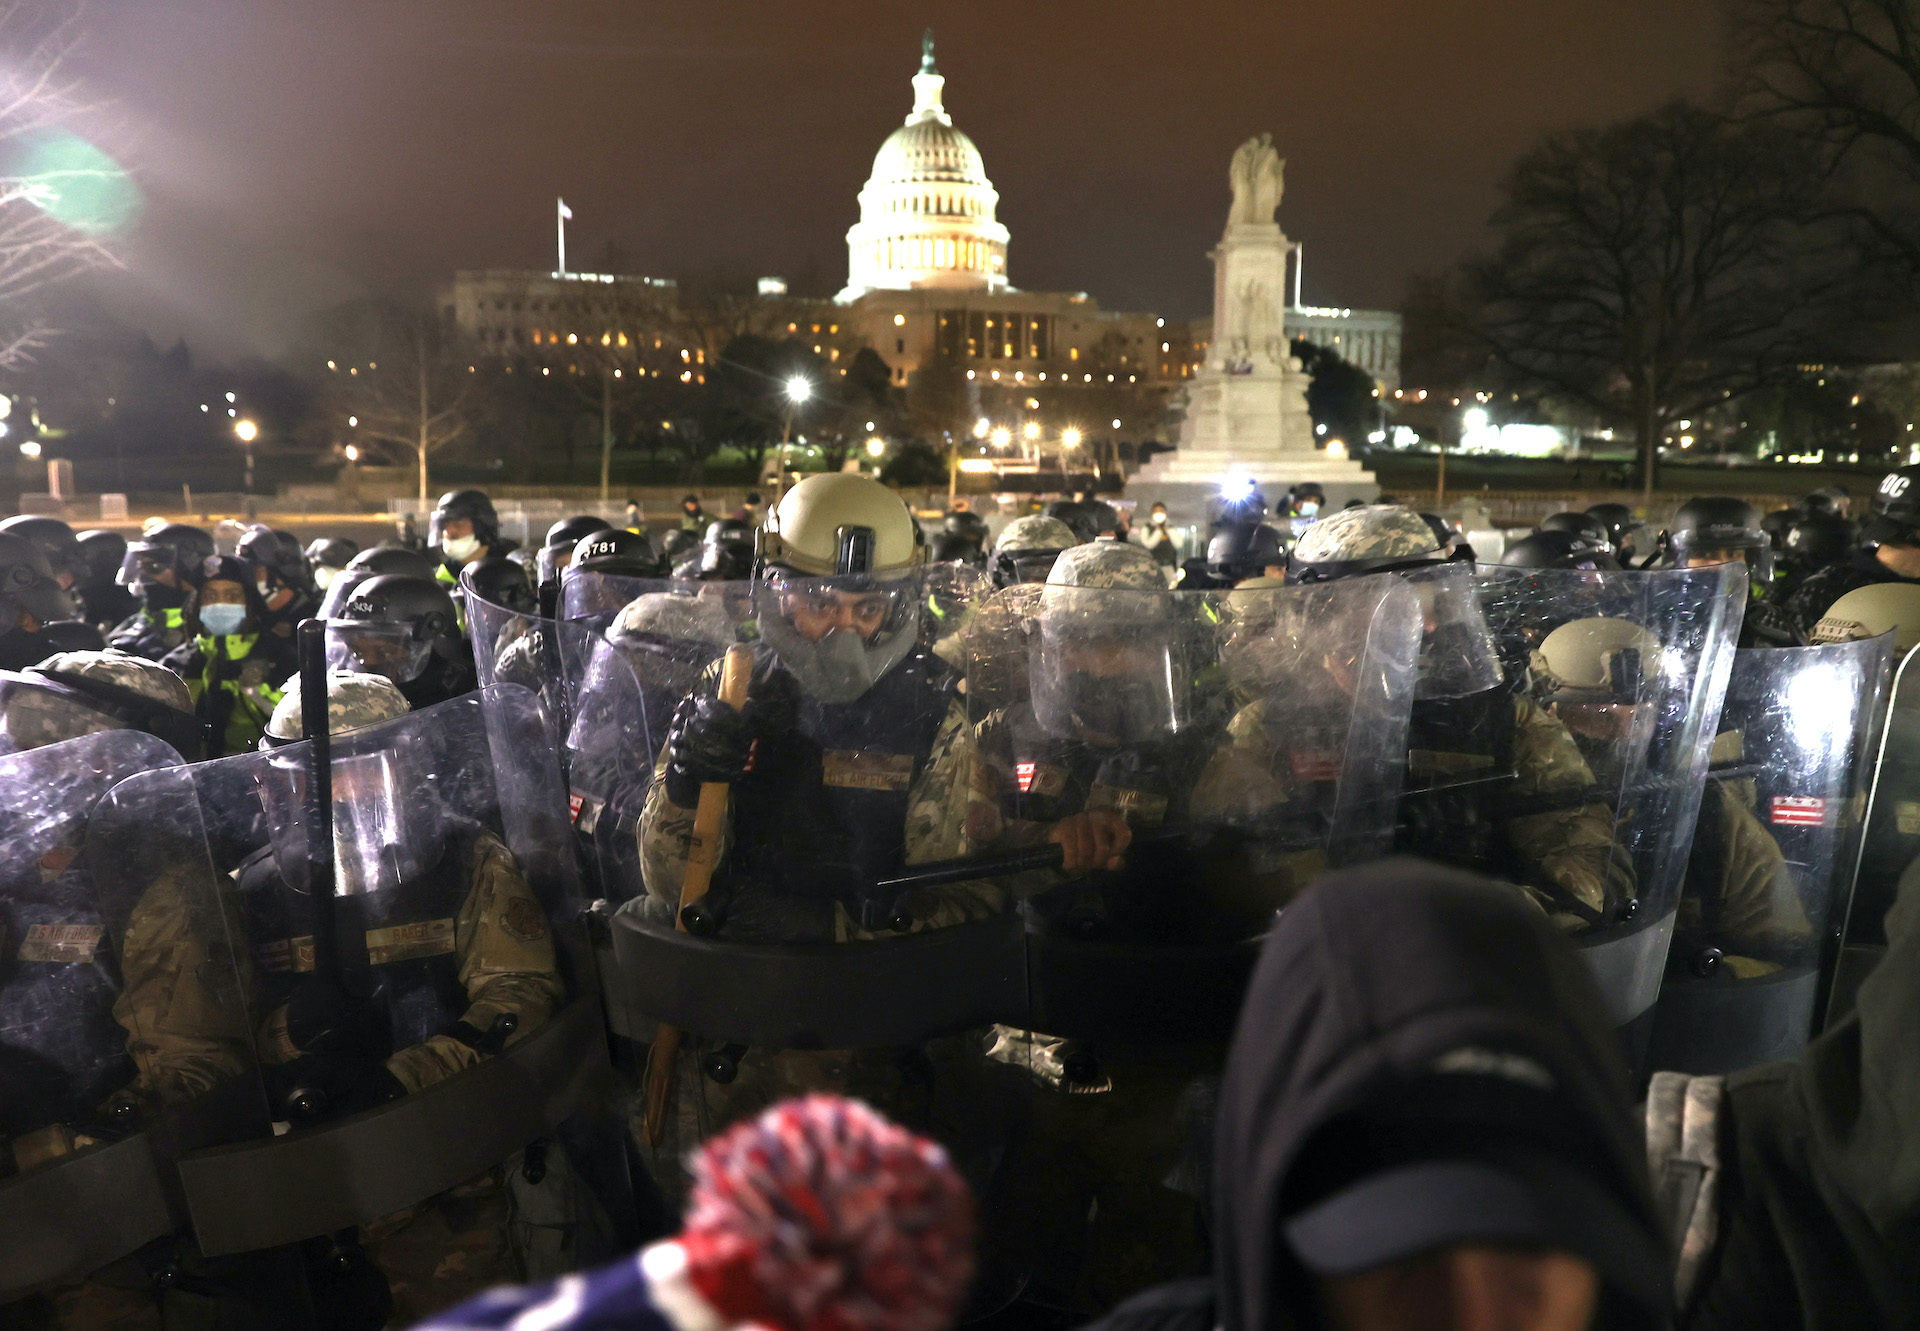 Members of the National Guard assist police officers in dispersing protesters who are gathering at the U.S. Capitol Building.(Tasos Katopodis/Getty Images)